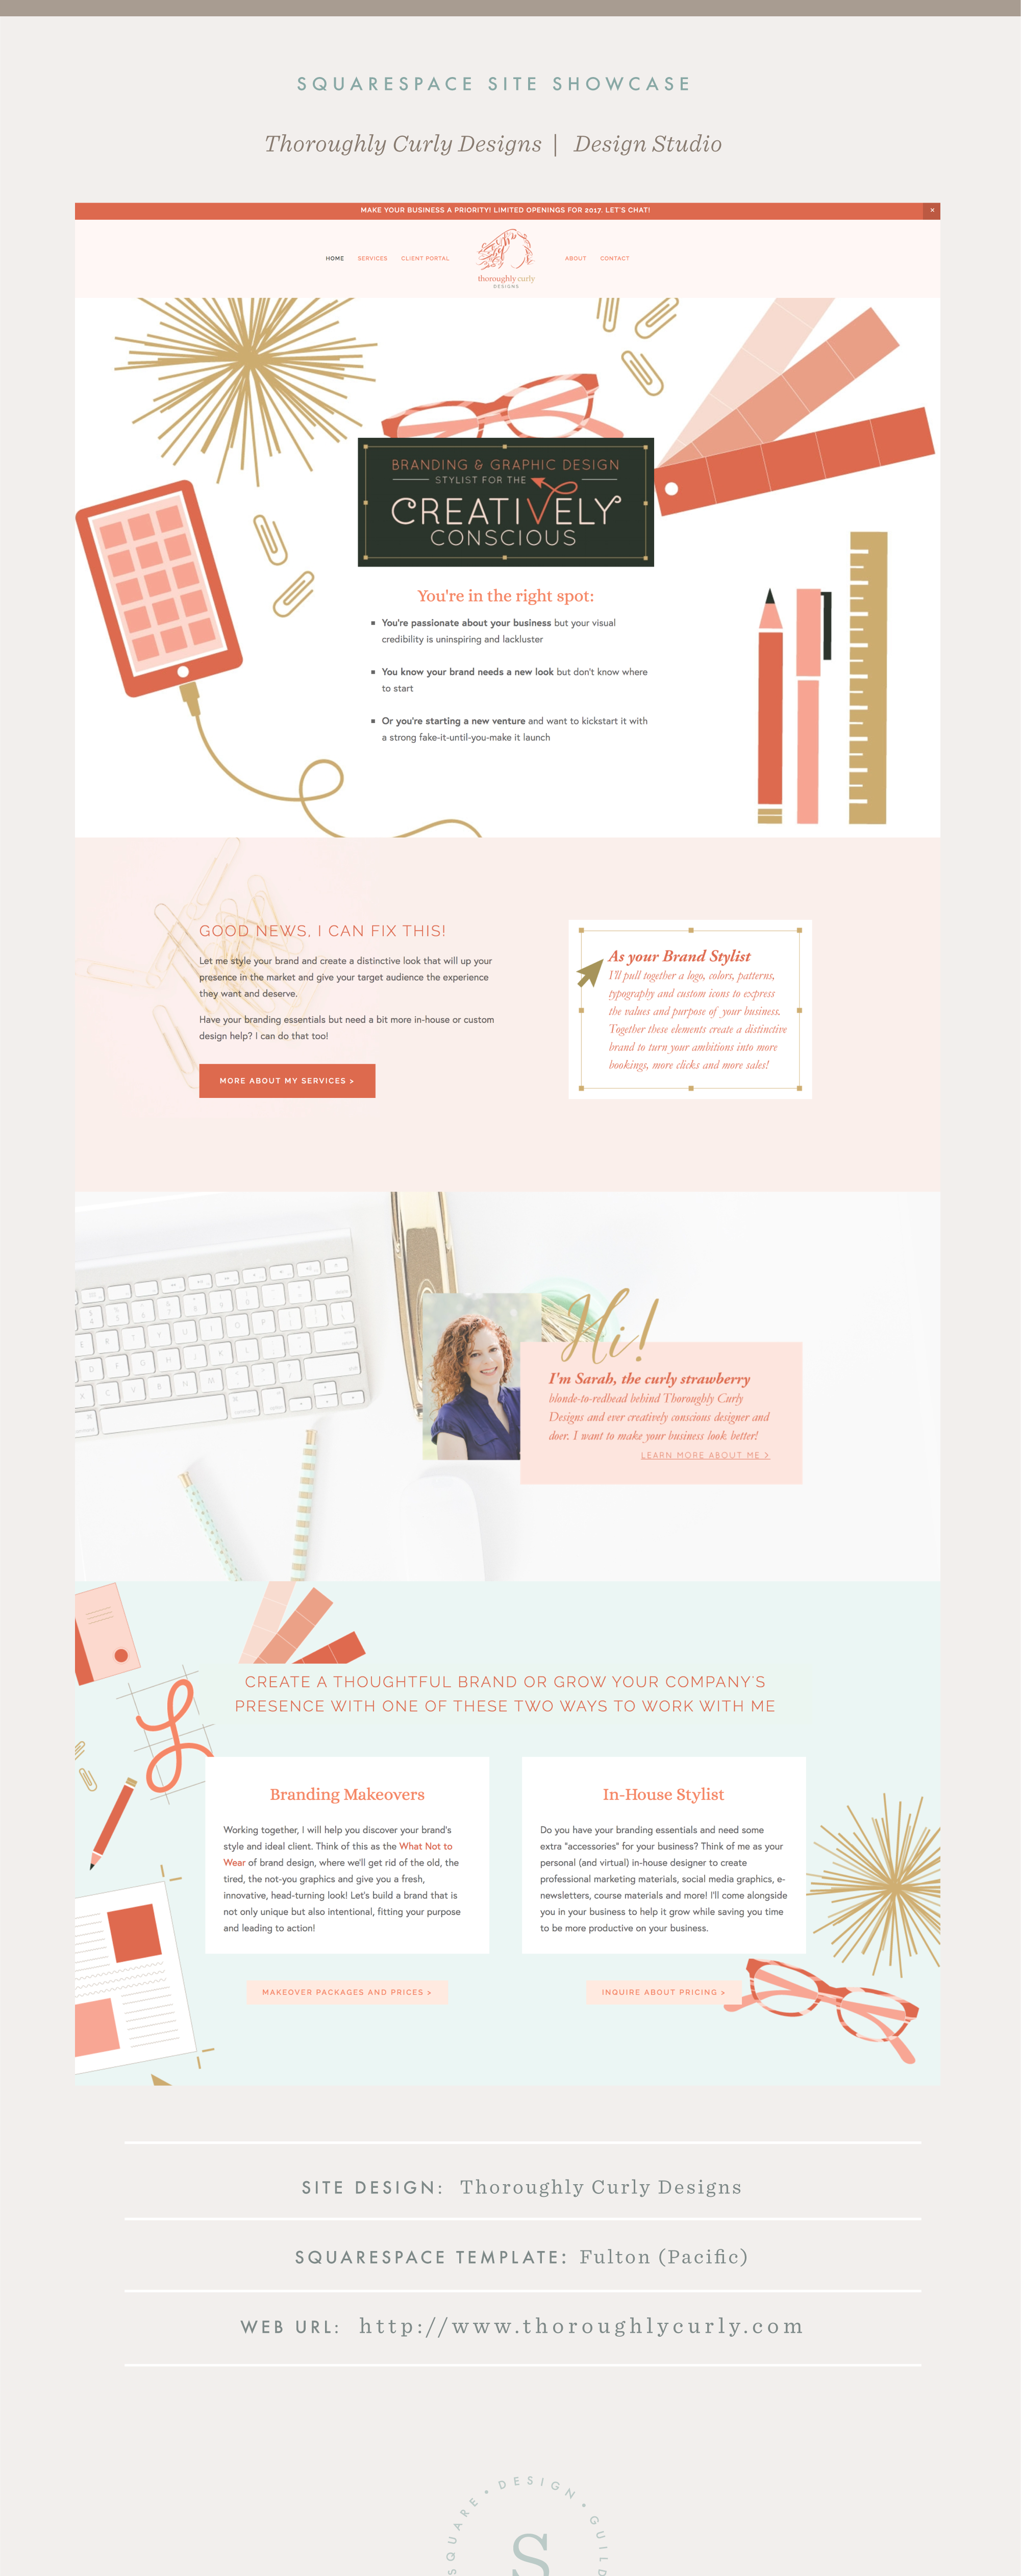 Squarespace Site Showcase | Thoroughly Curly Designs | Fulton Template